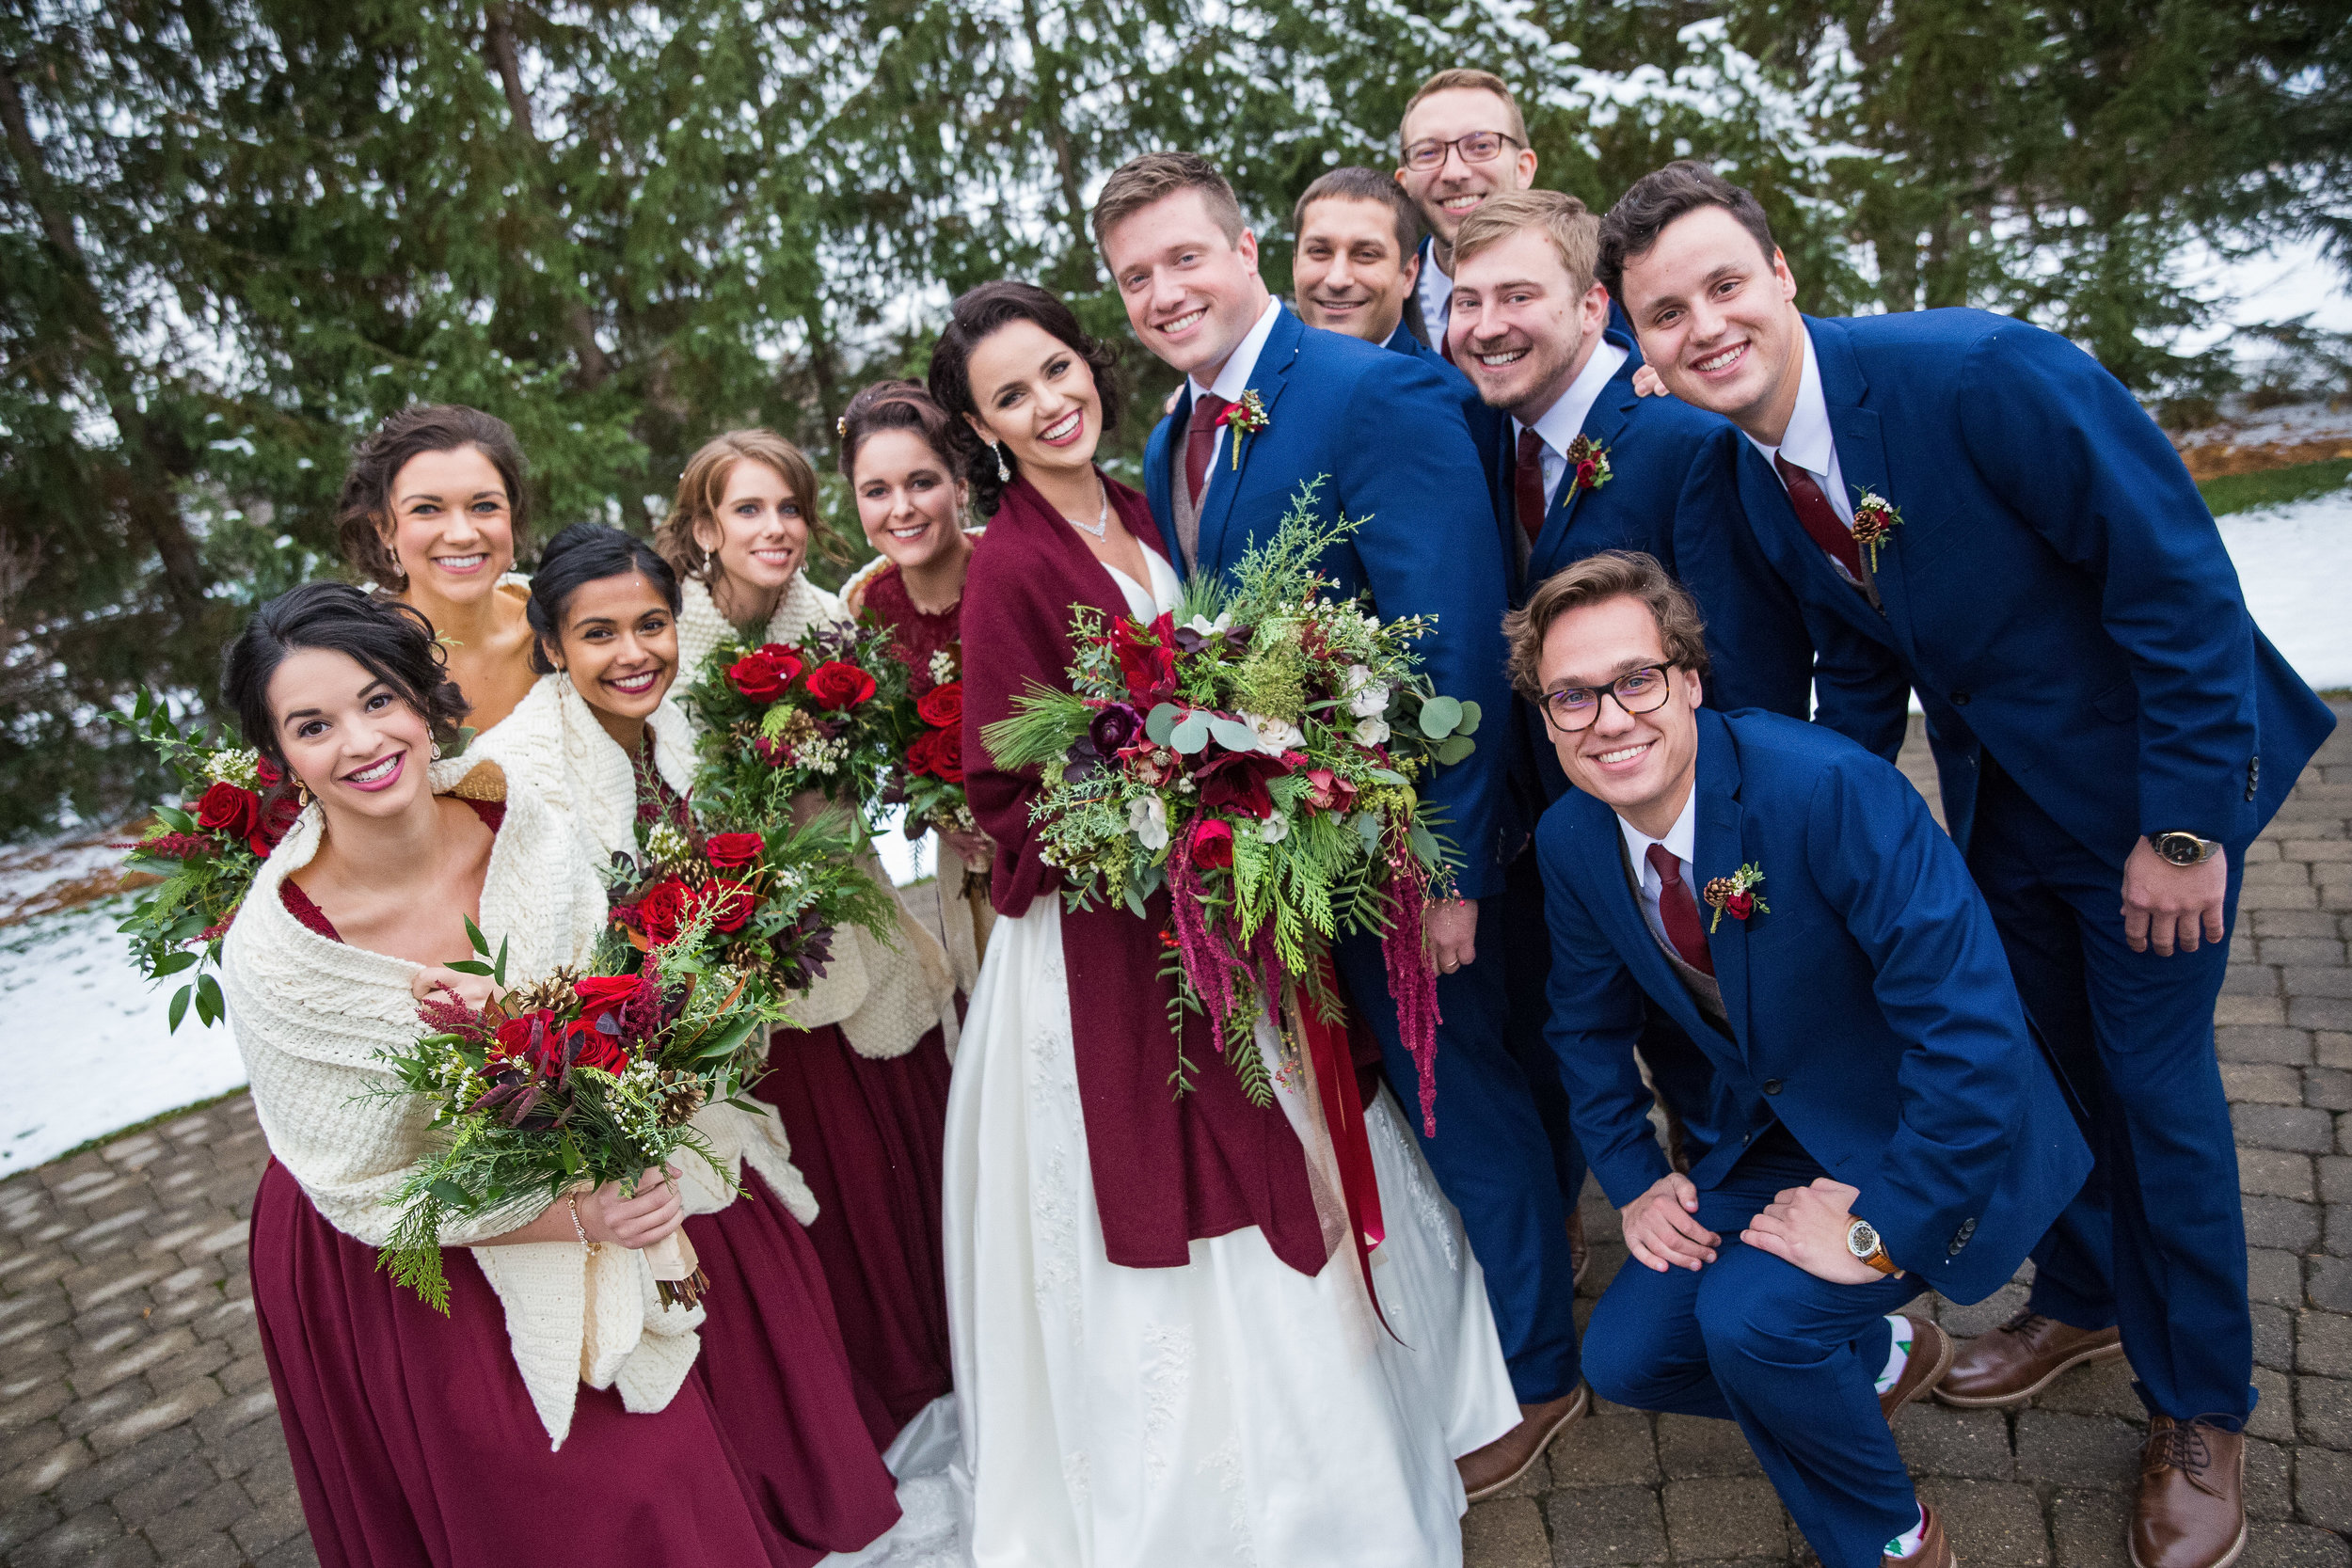 Nick and Marie Bridal Party